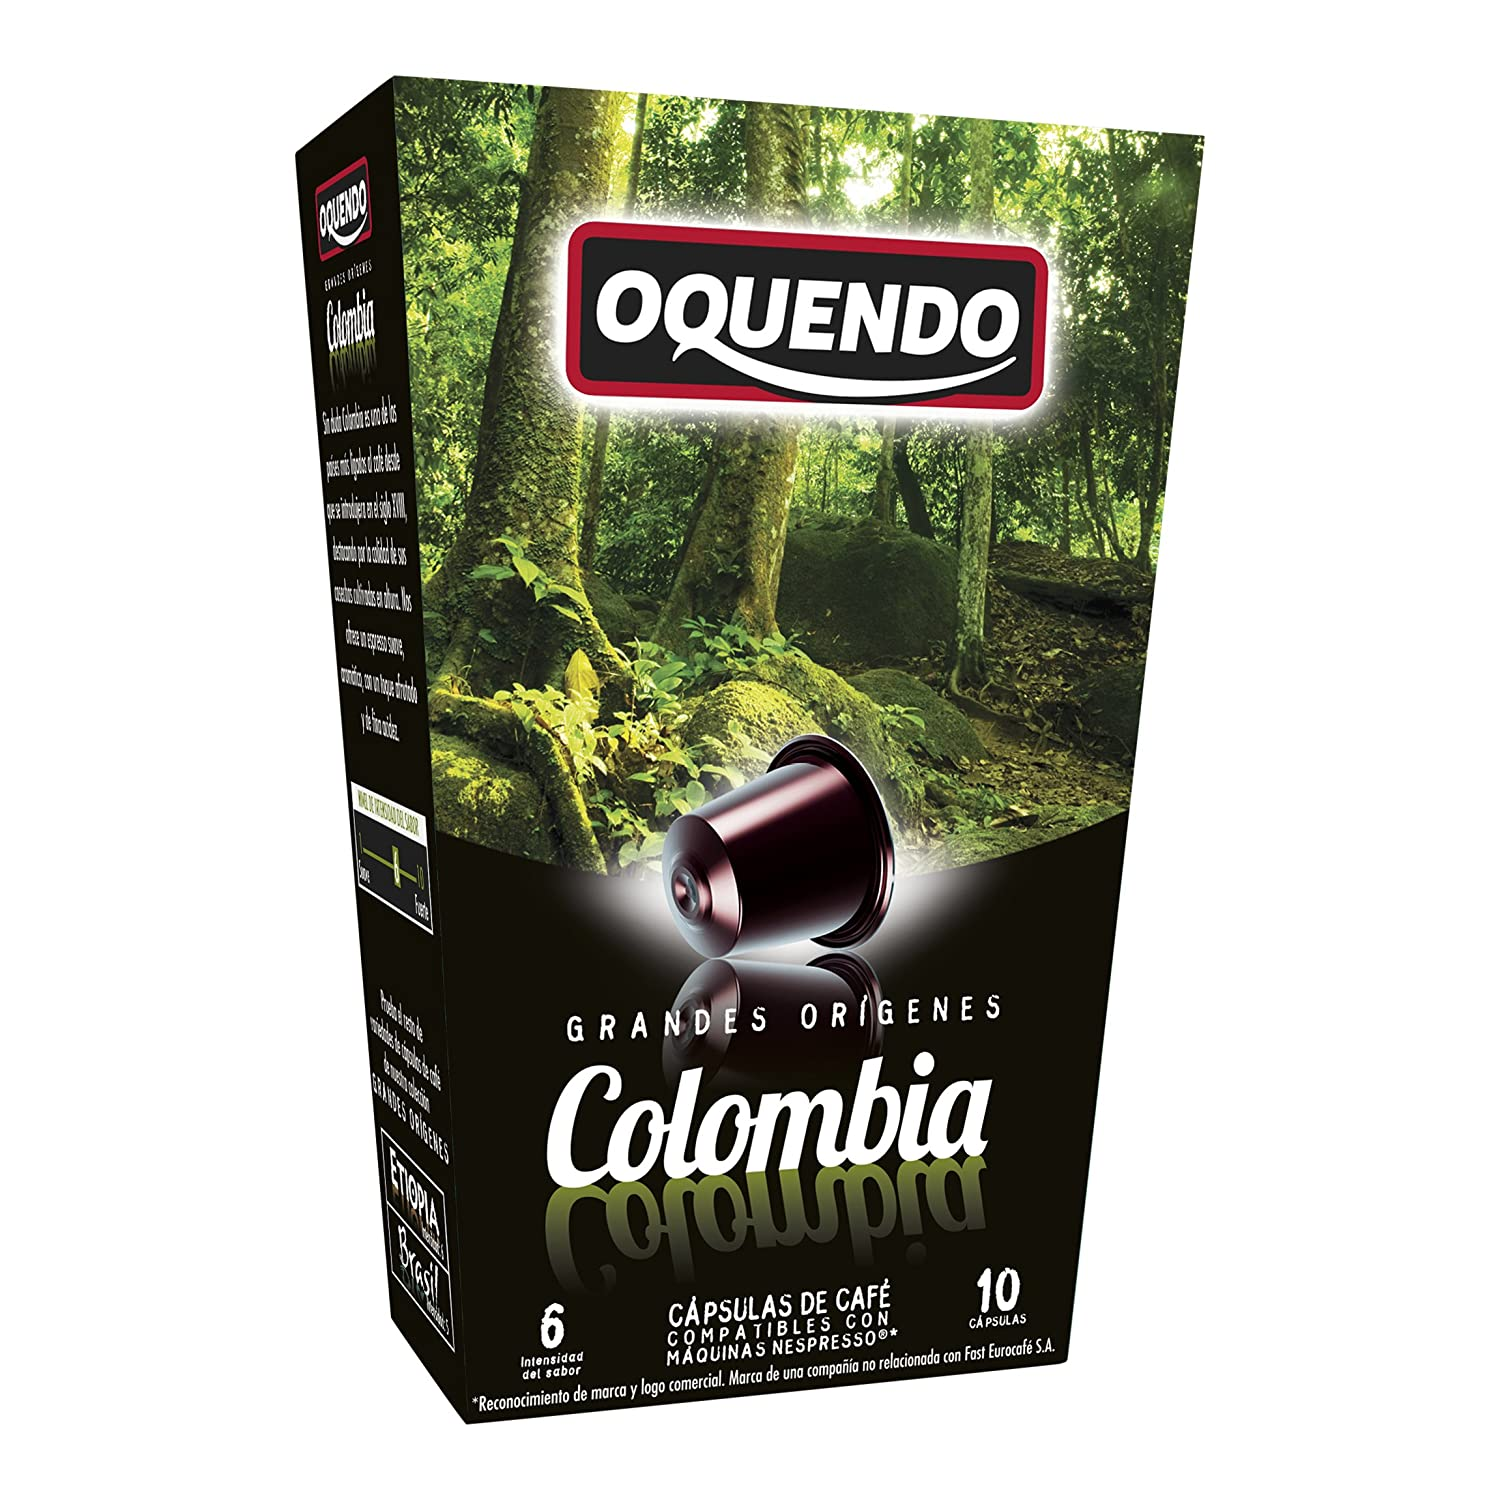 Nespresso Compatible Coffee Capsules - 80 Nespresso Pods -By OQUENDO - 60 Day Satisfaction Guarantee-Oquendo Colombian Nespresso Capsules: Amazon.com: ...